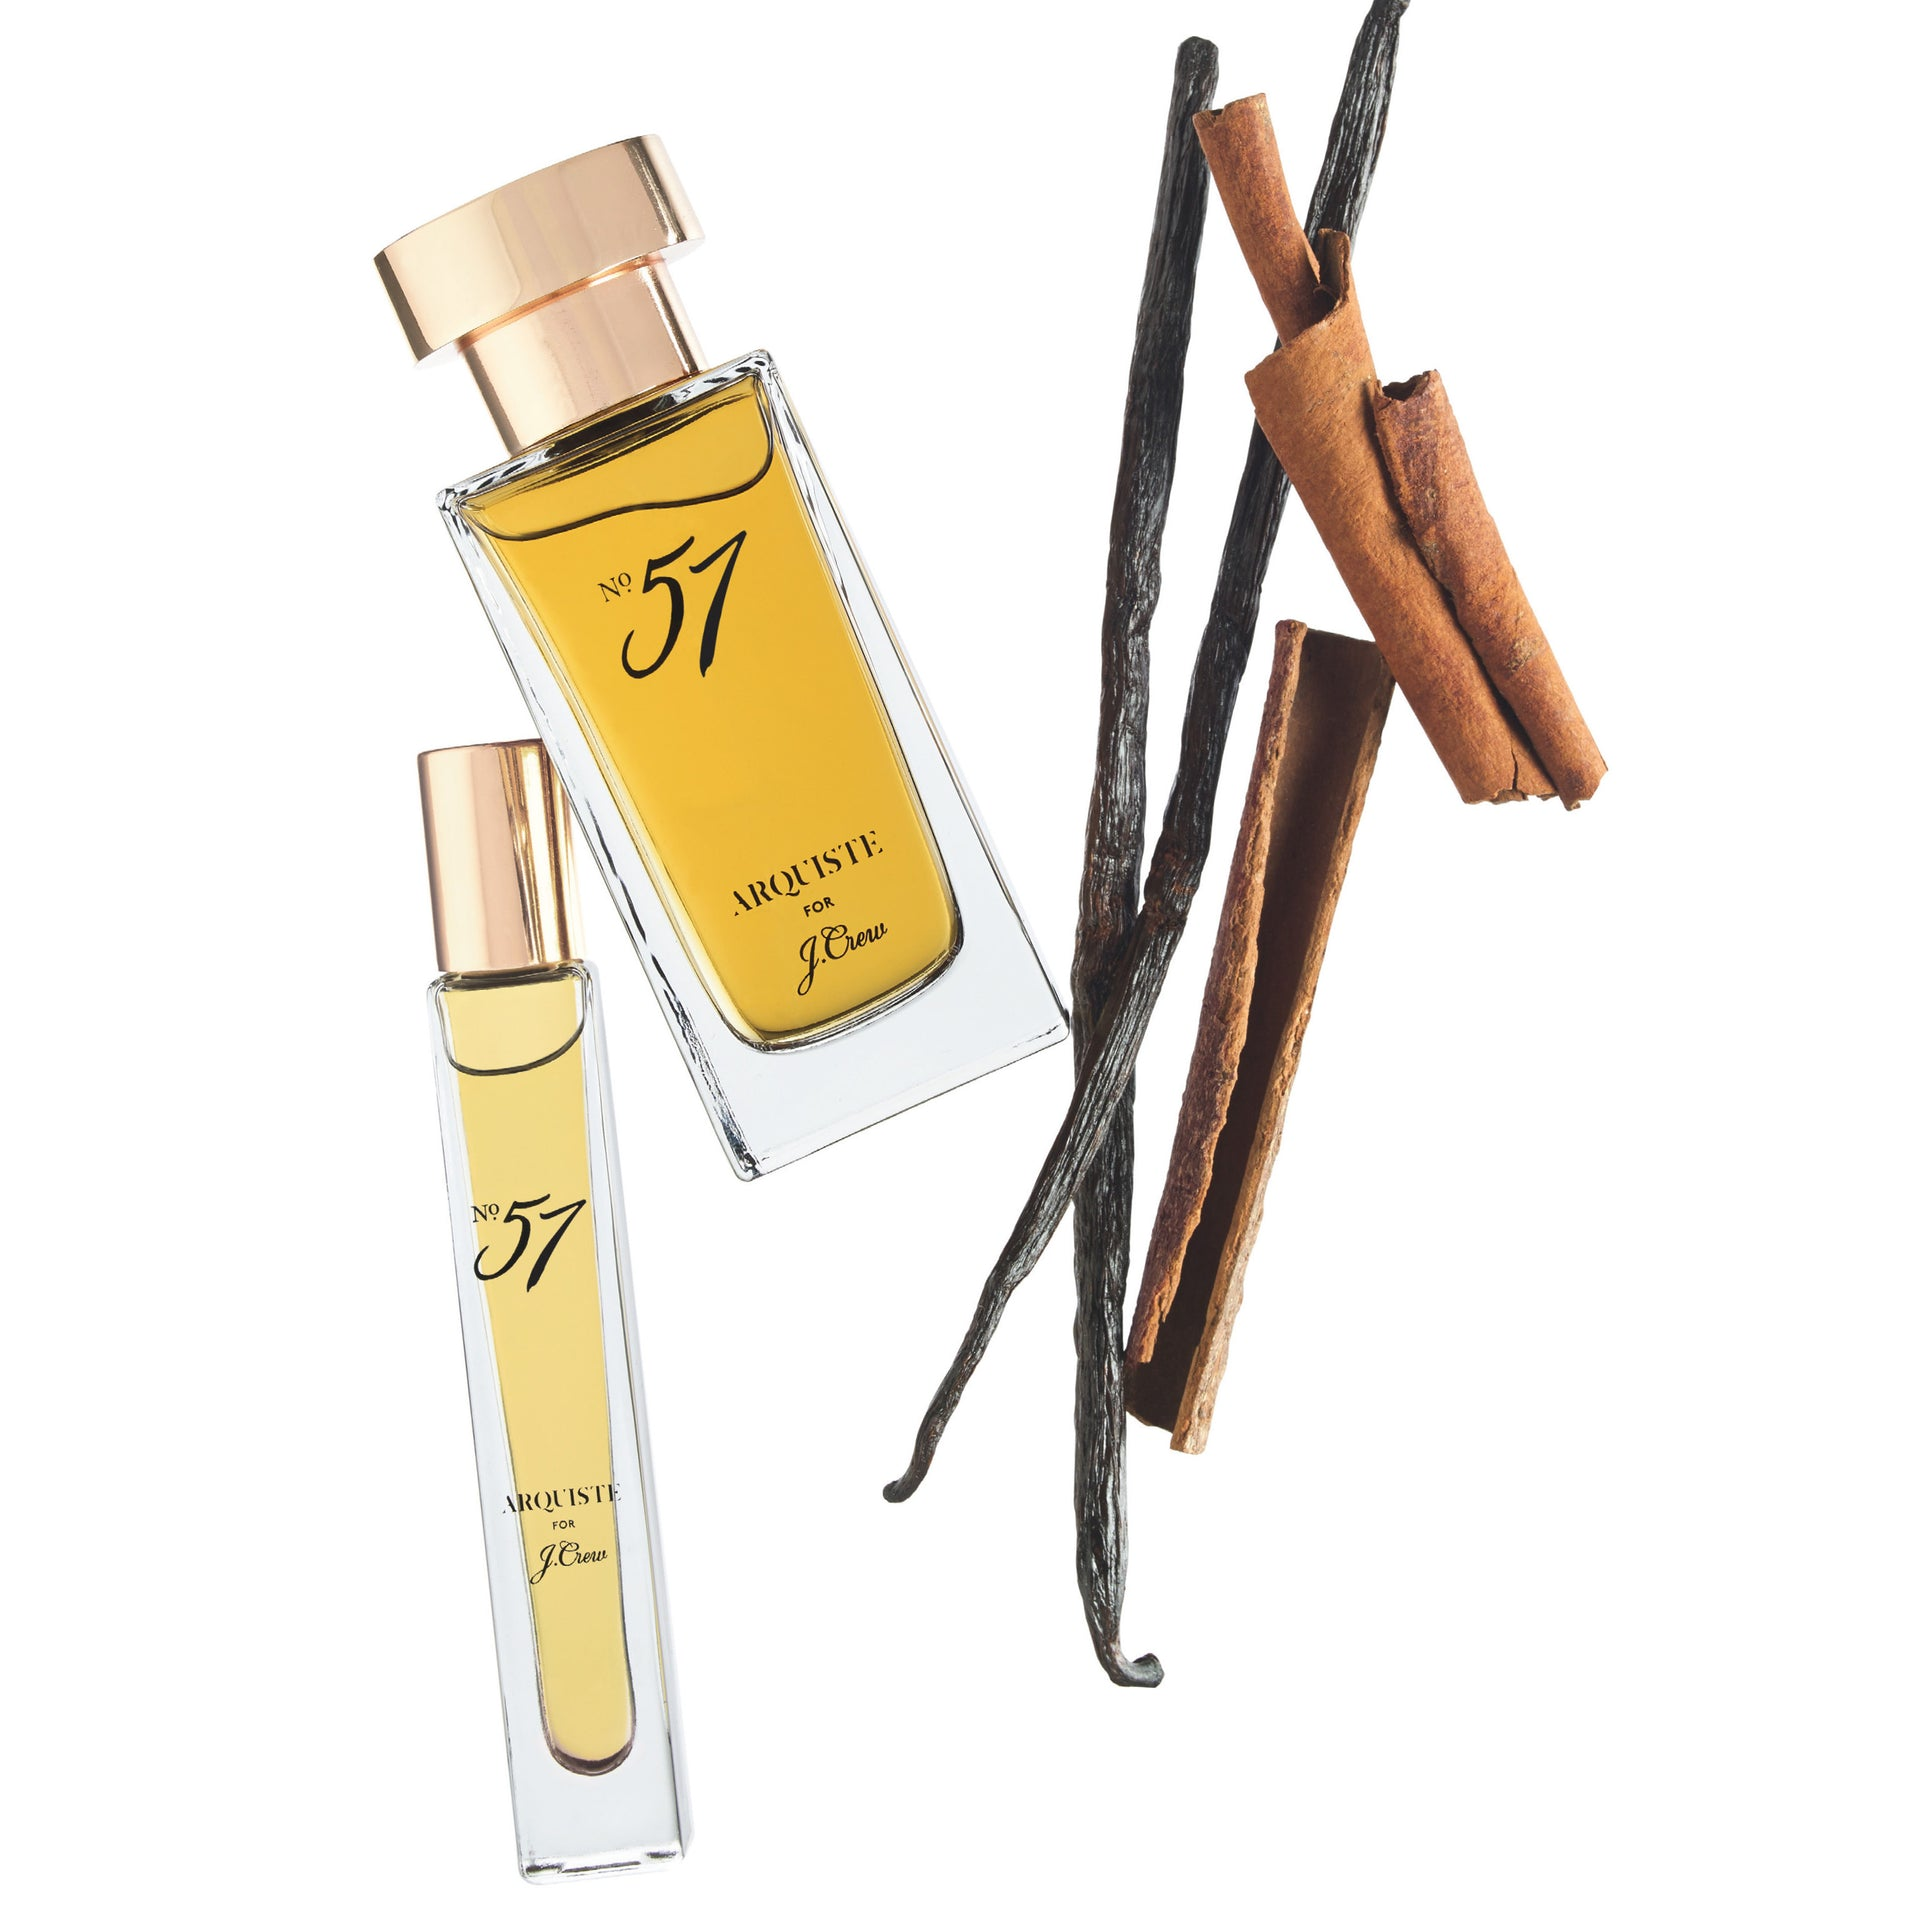 ARQUISTE No.57 scent perfume unisex for J.Crew JCrew Jenna Lyons fragrance